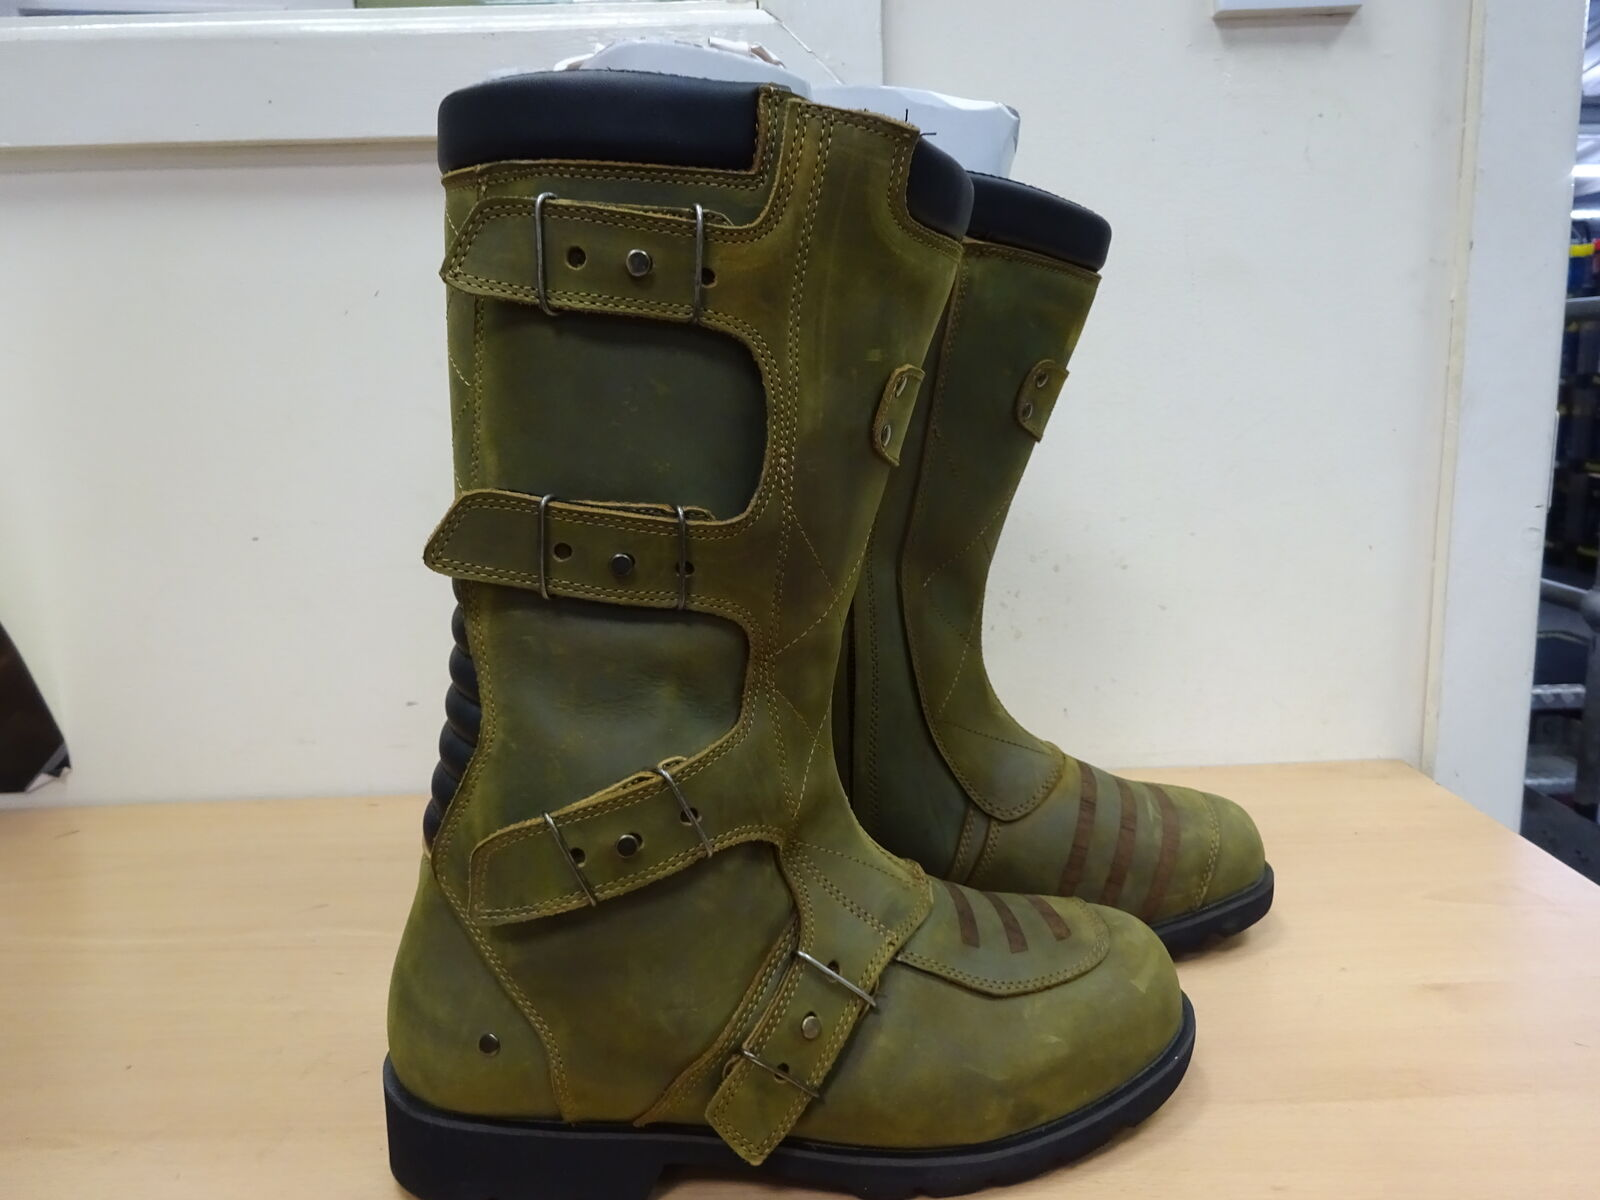 MERLIN CLAN BOOT BROWN LEATHER MENS